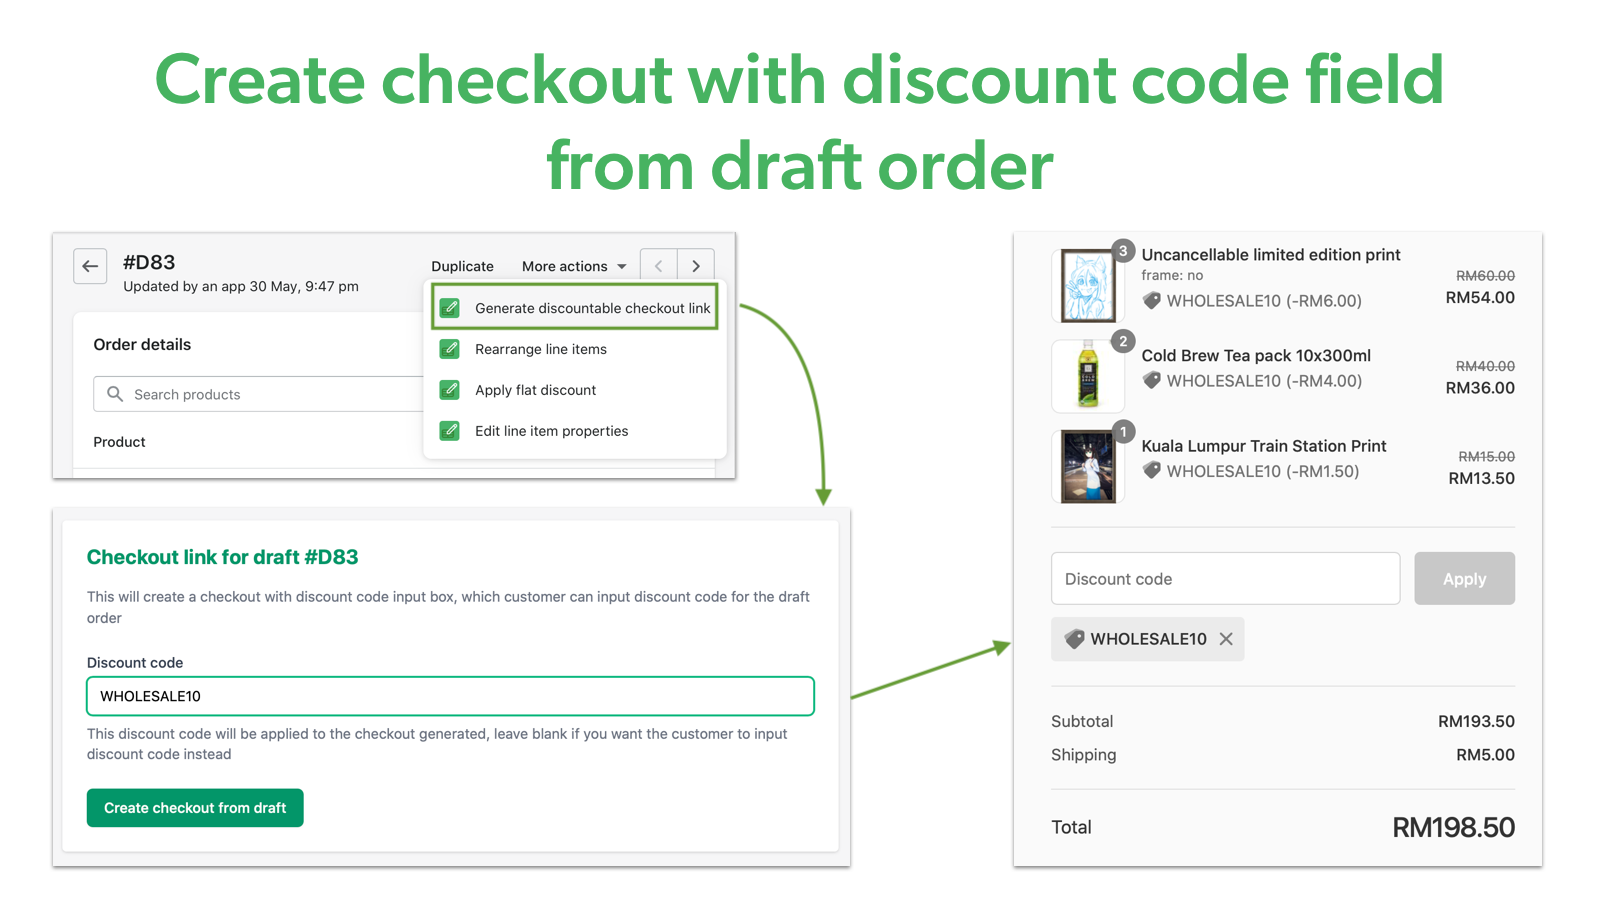 Create checkout with discount code from draft order